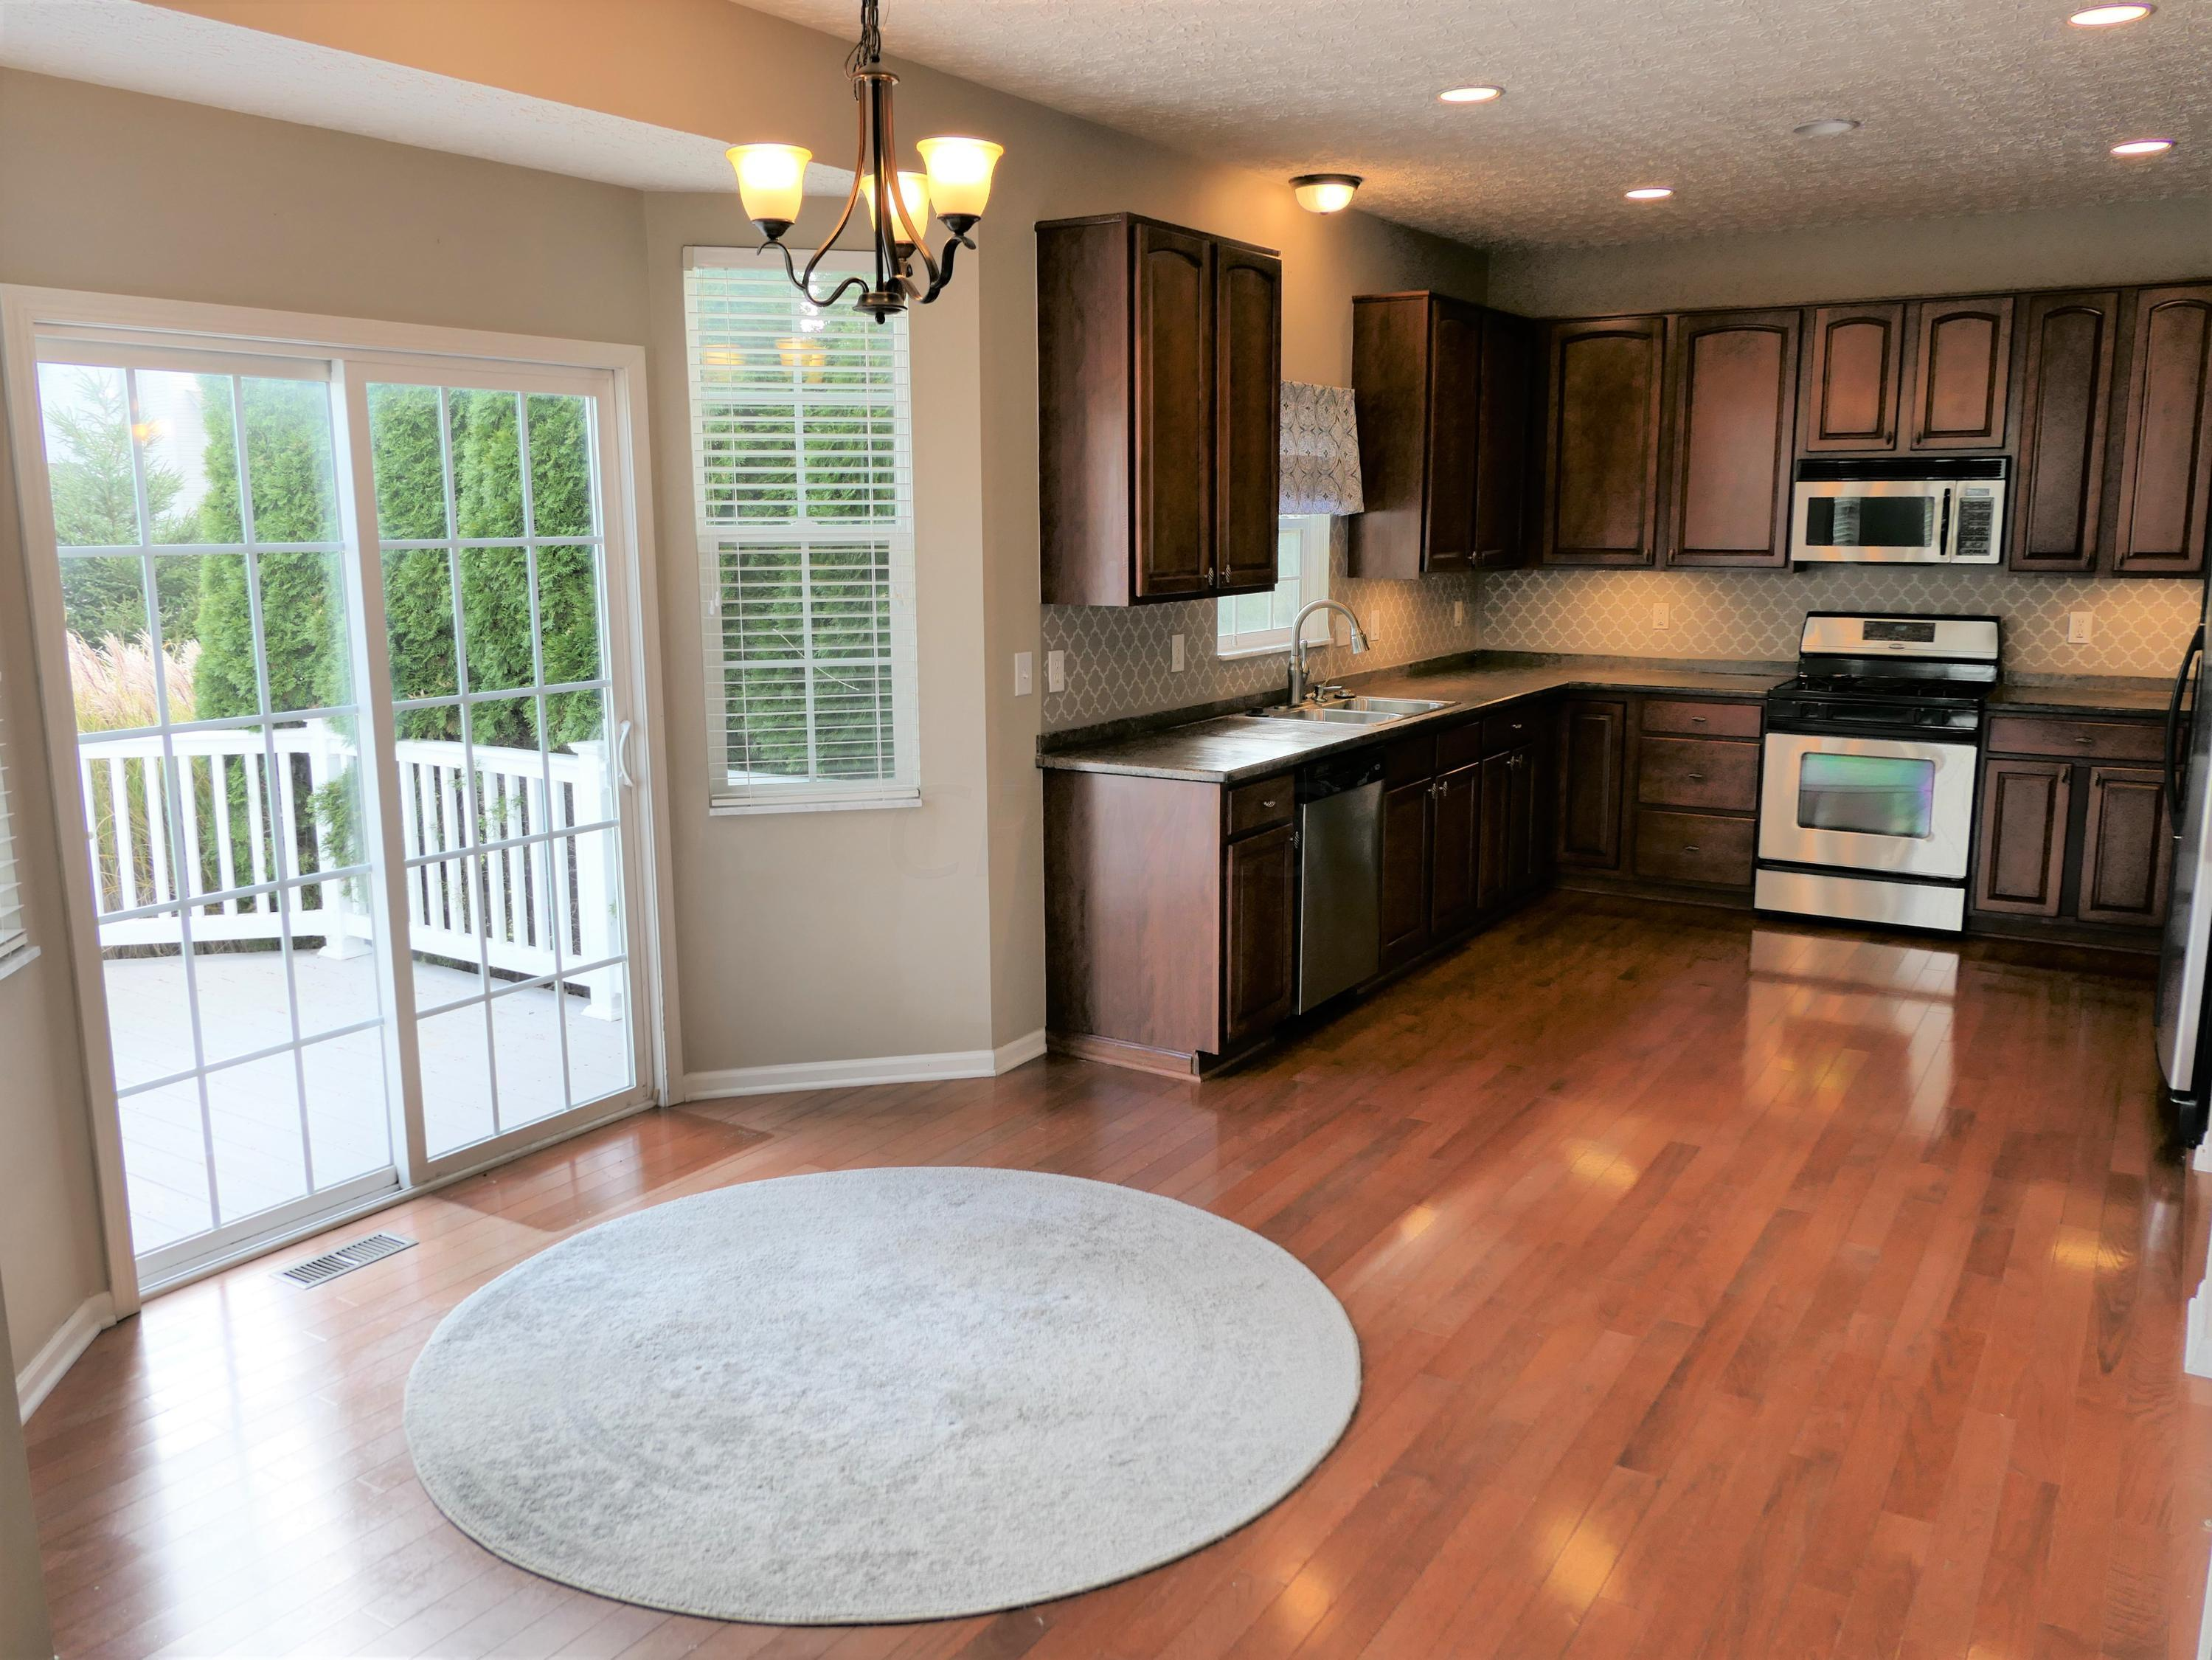 7461 Tall Pine Drive, Lewis Center, Ohio 43035, 4 Bedrooms Bedrooms, ,3 BathroomsBathrooms,Residential,For Sale,Tall Pine,220040569